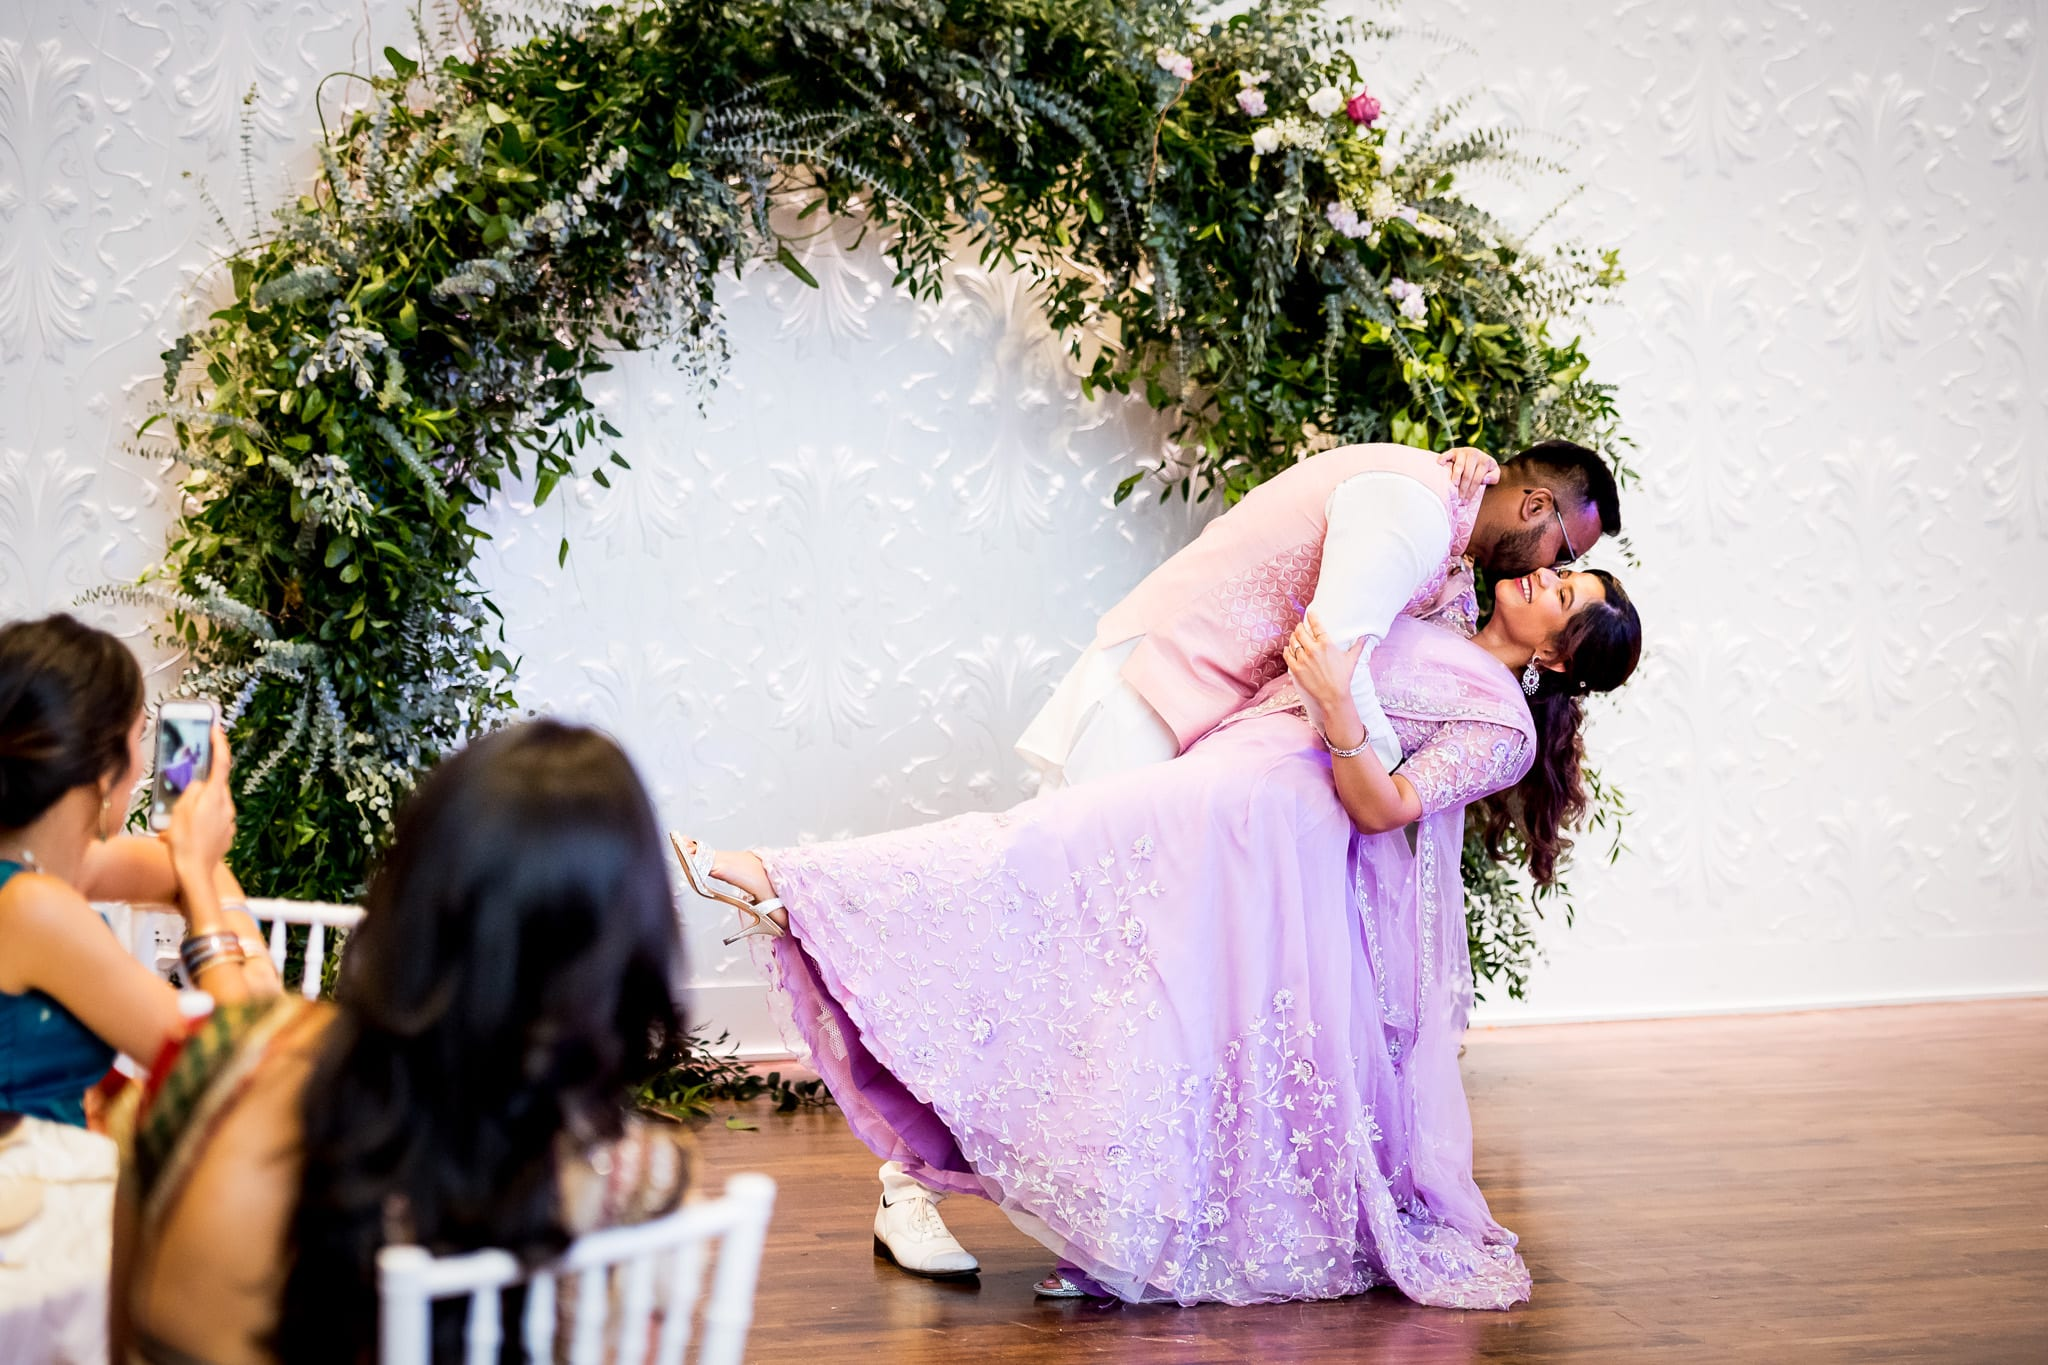 Groom dips the bride and gives her a kiss in front of the large white wall at The Blaisdell